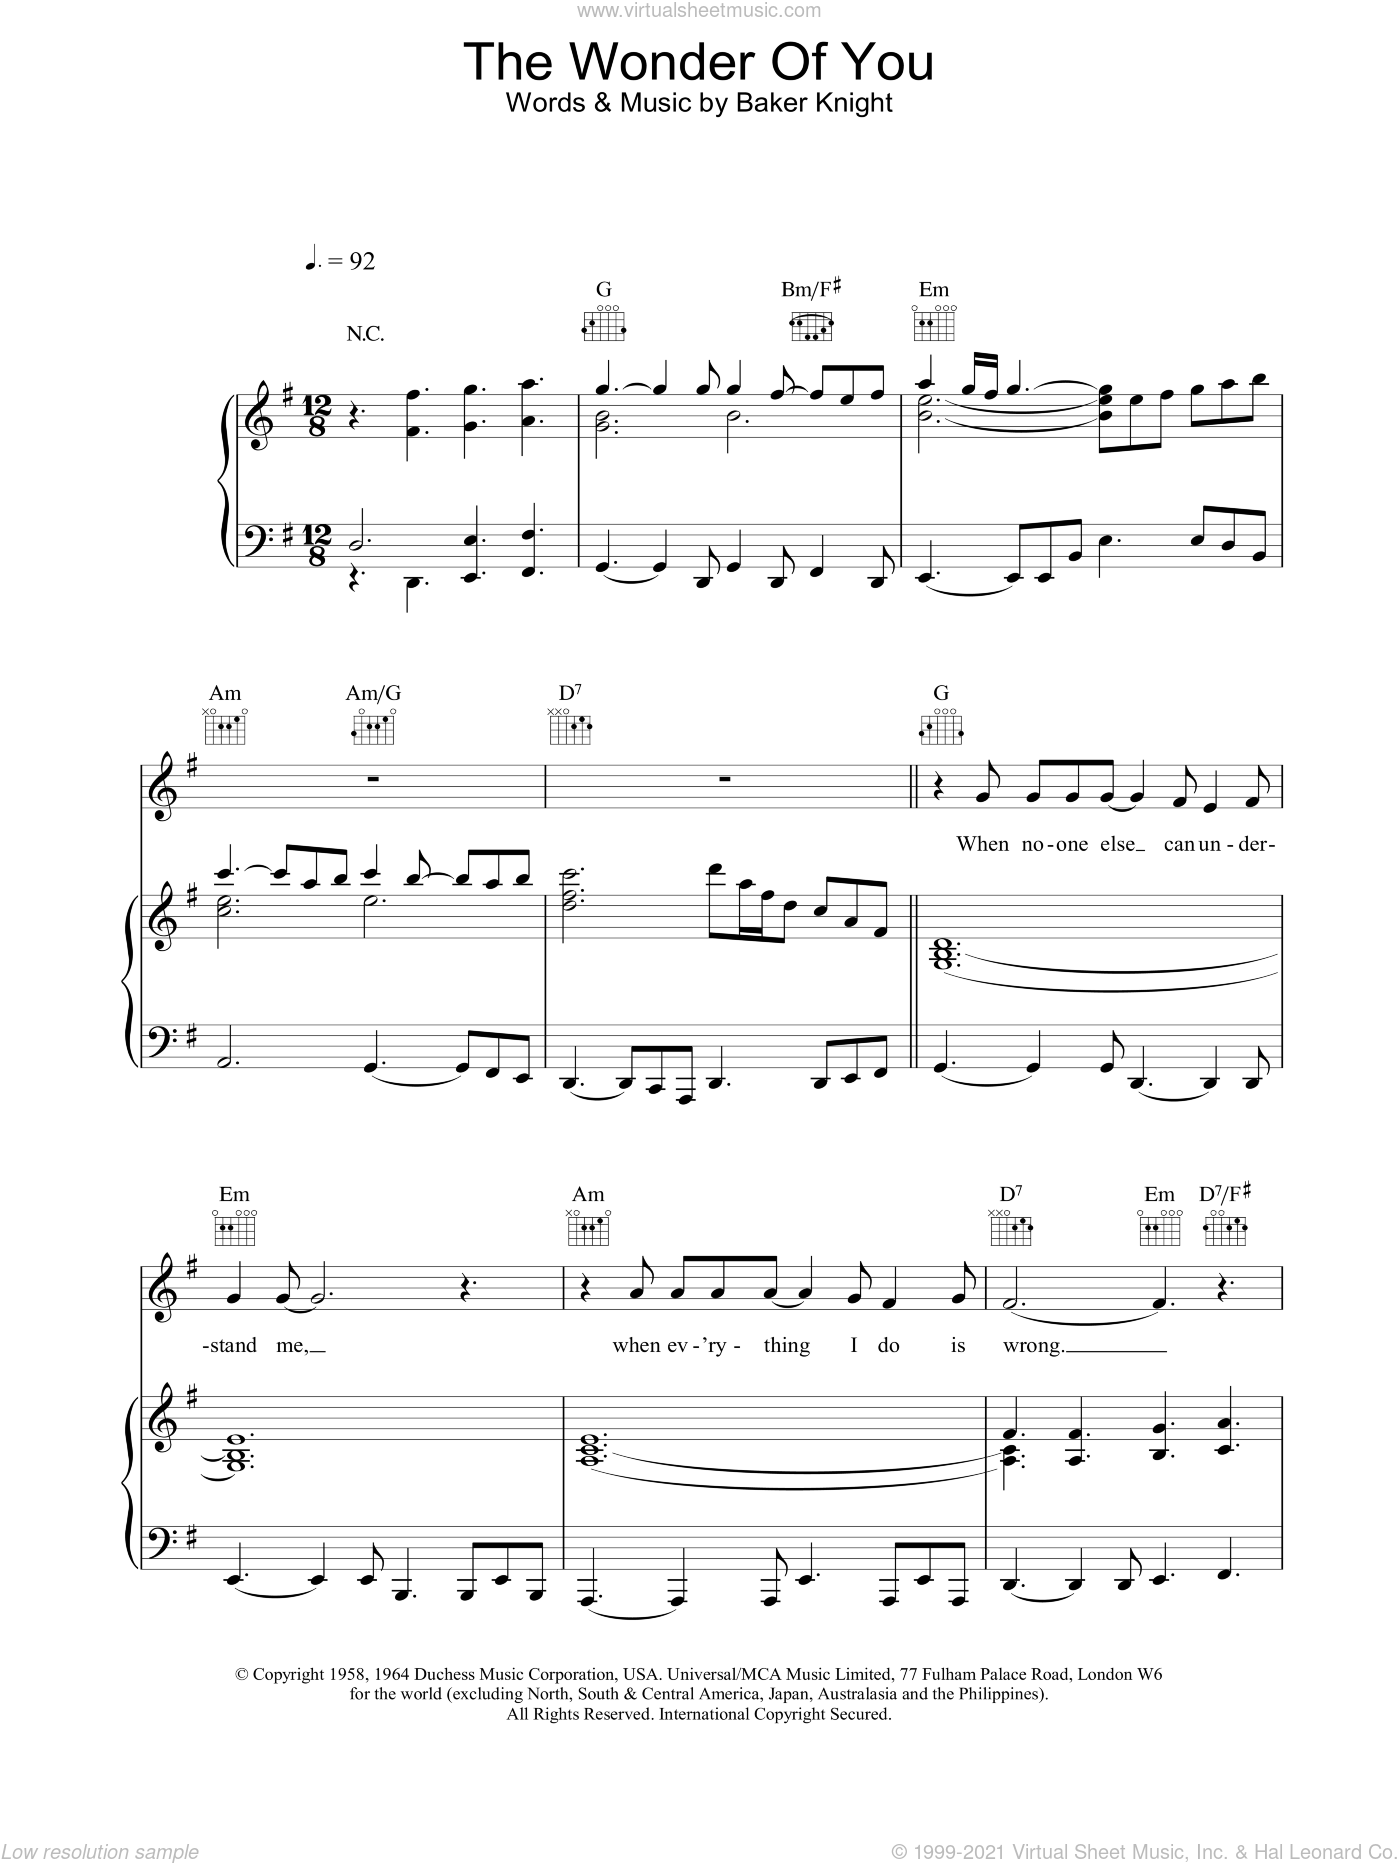 The Wonder Of You sheet music for voice, piano or guitar by Baker Knight